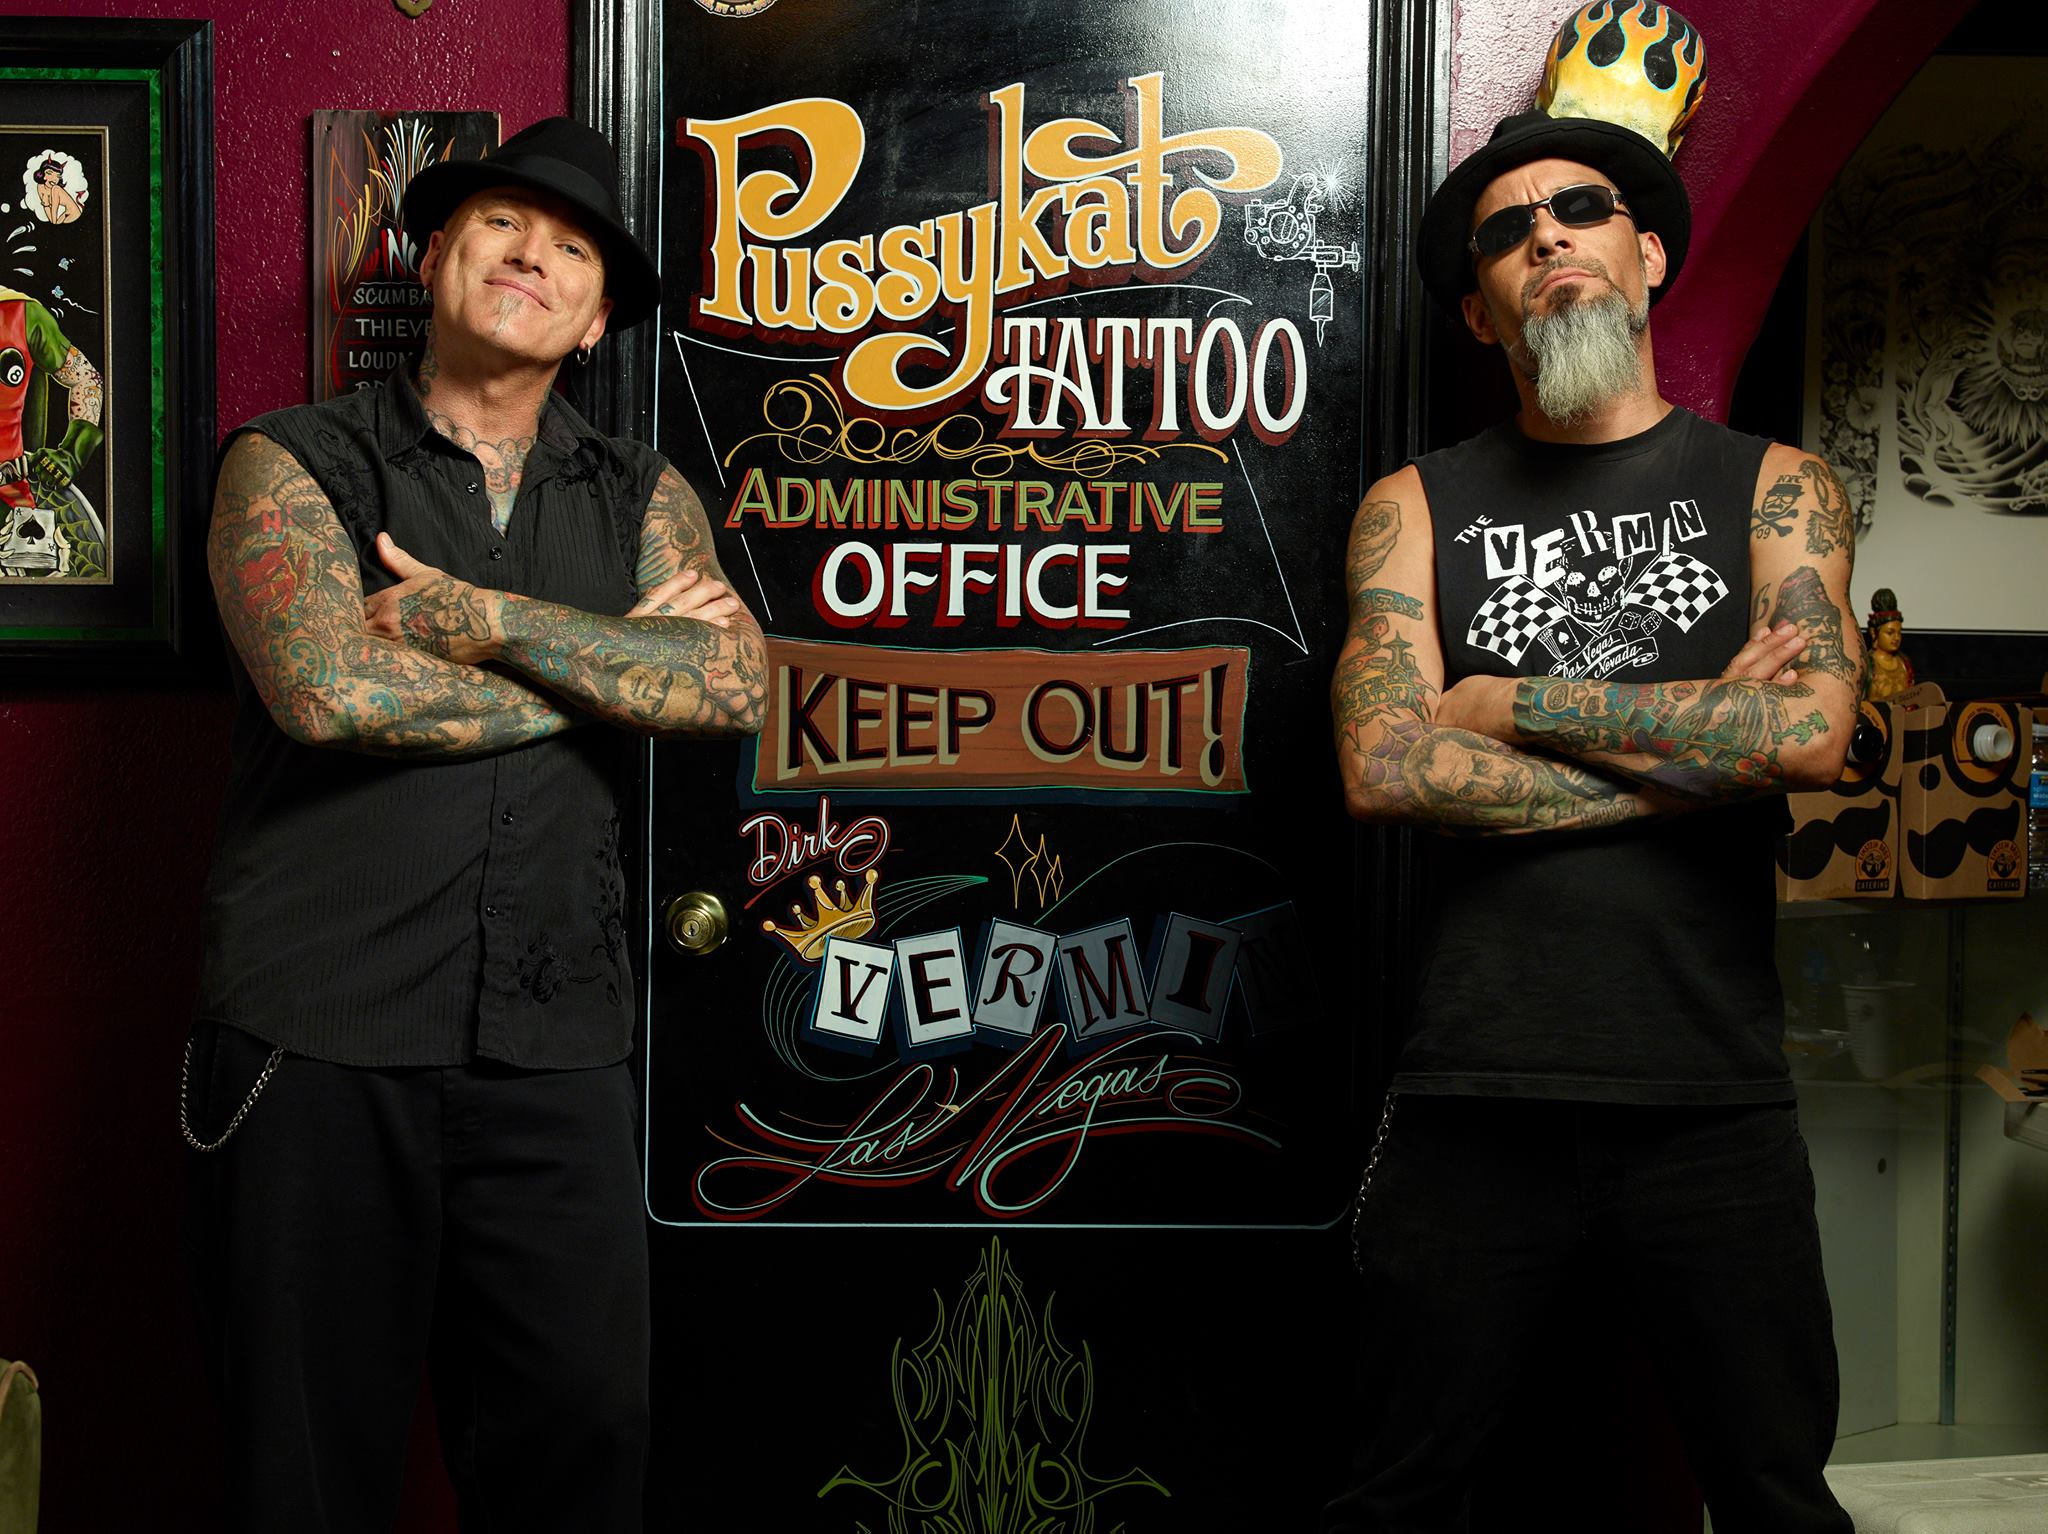 Watch the Tramp Stamps Gone Wild Full Episode - Bad Ink - A&E  Bad Ink Truck